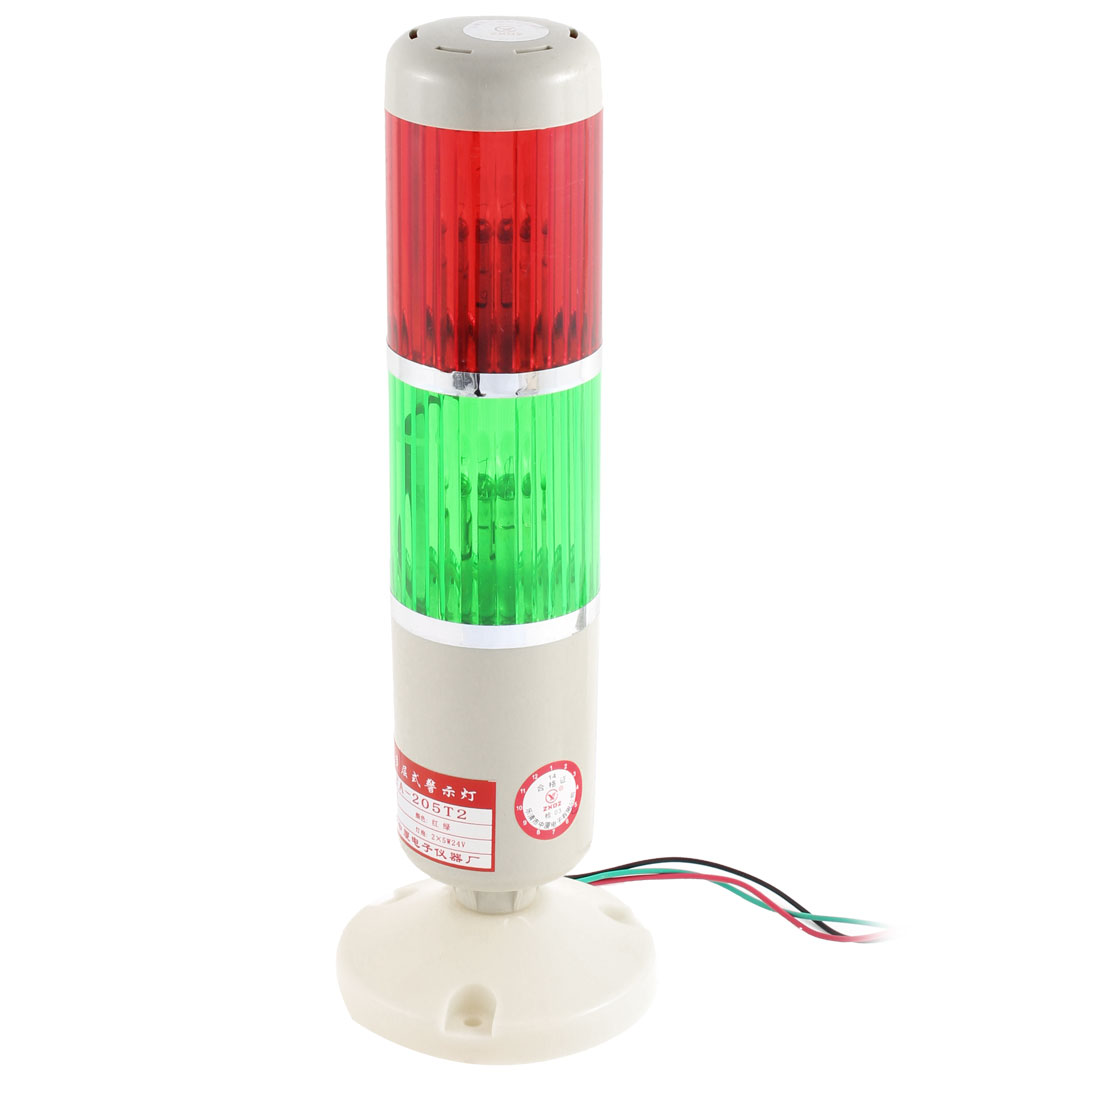 DC 24V Red Green Signal Tower Lamp Industrial Warning Stack Light LTA-205T2